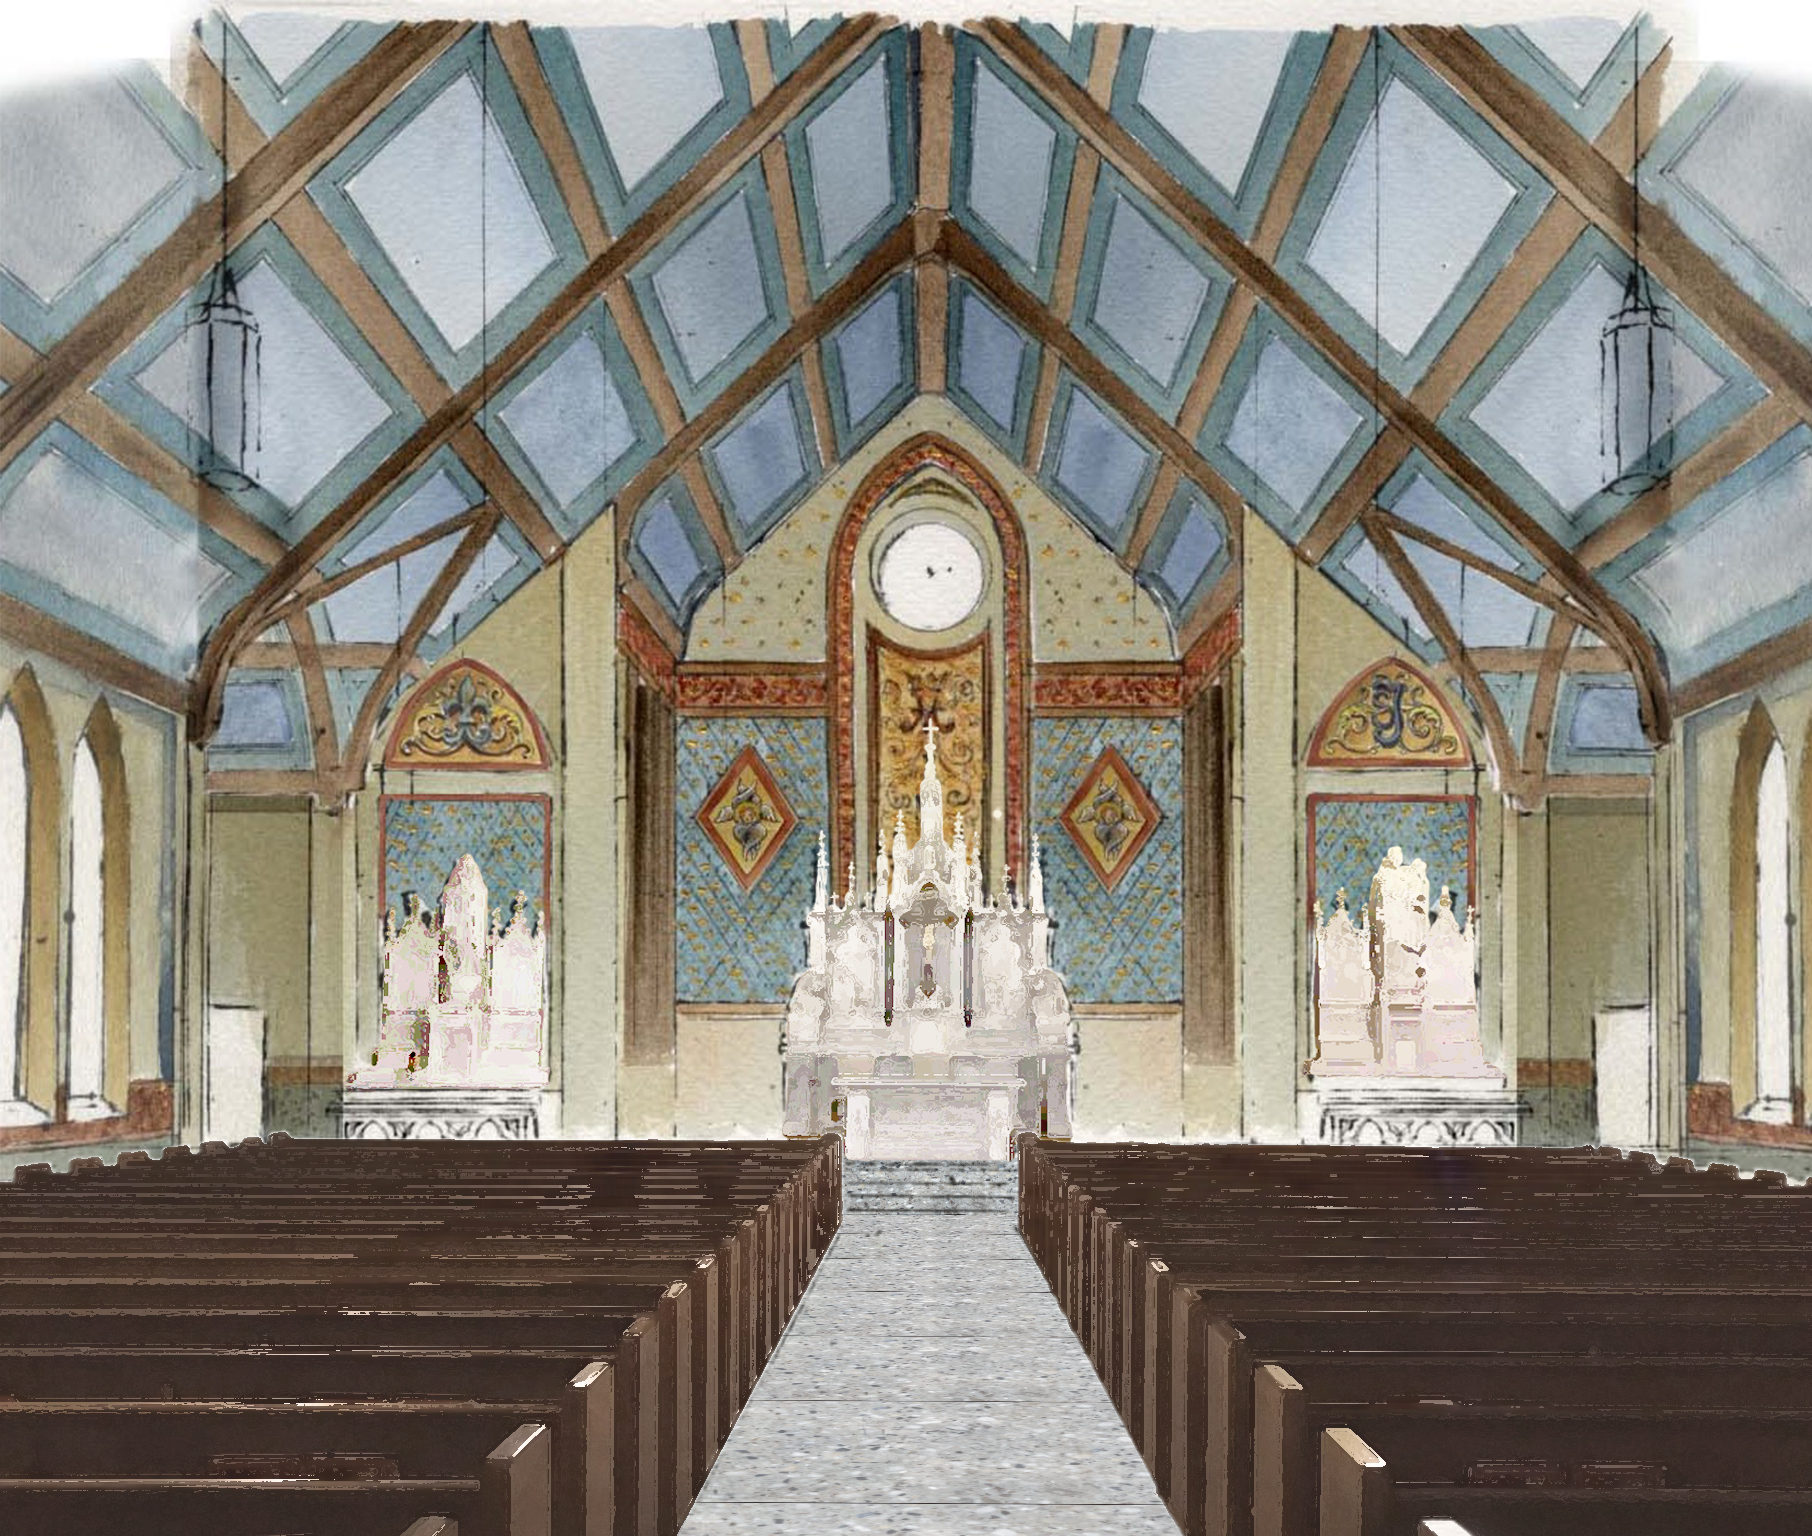 St. Mary of the Assumption by Canning Liturgical Arts